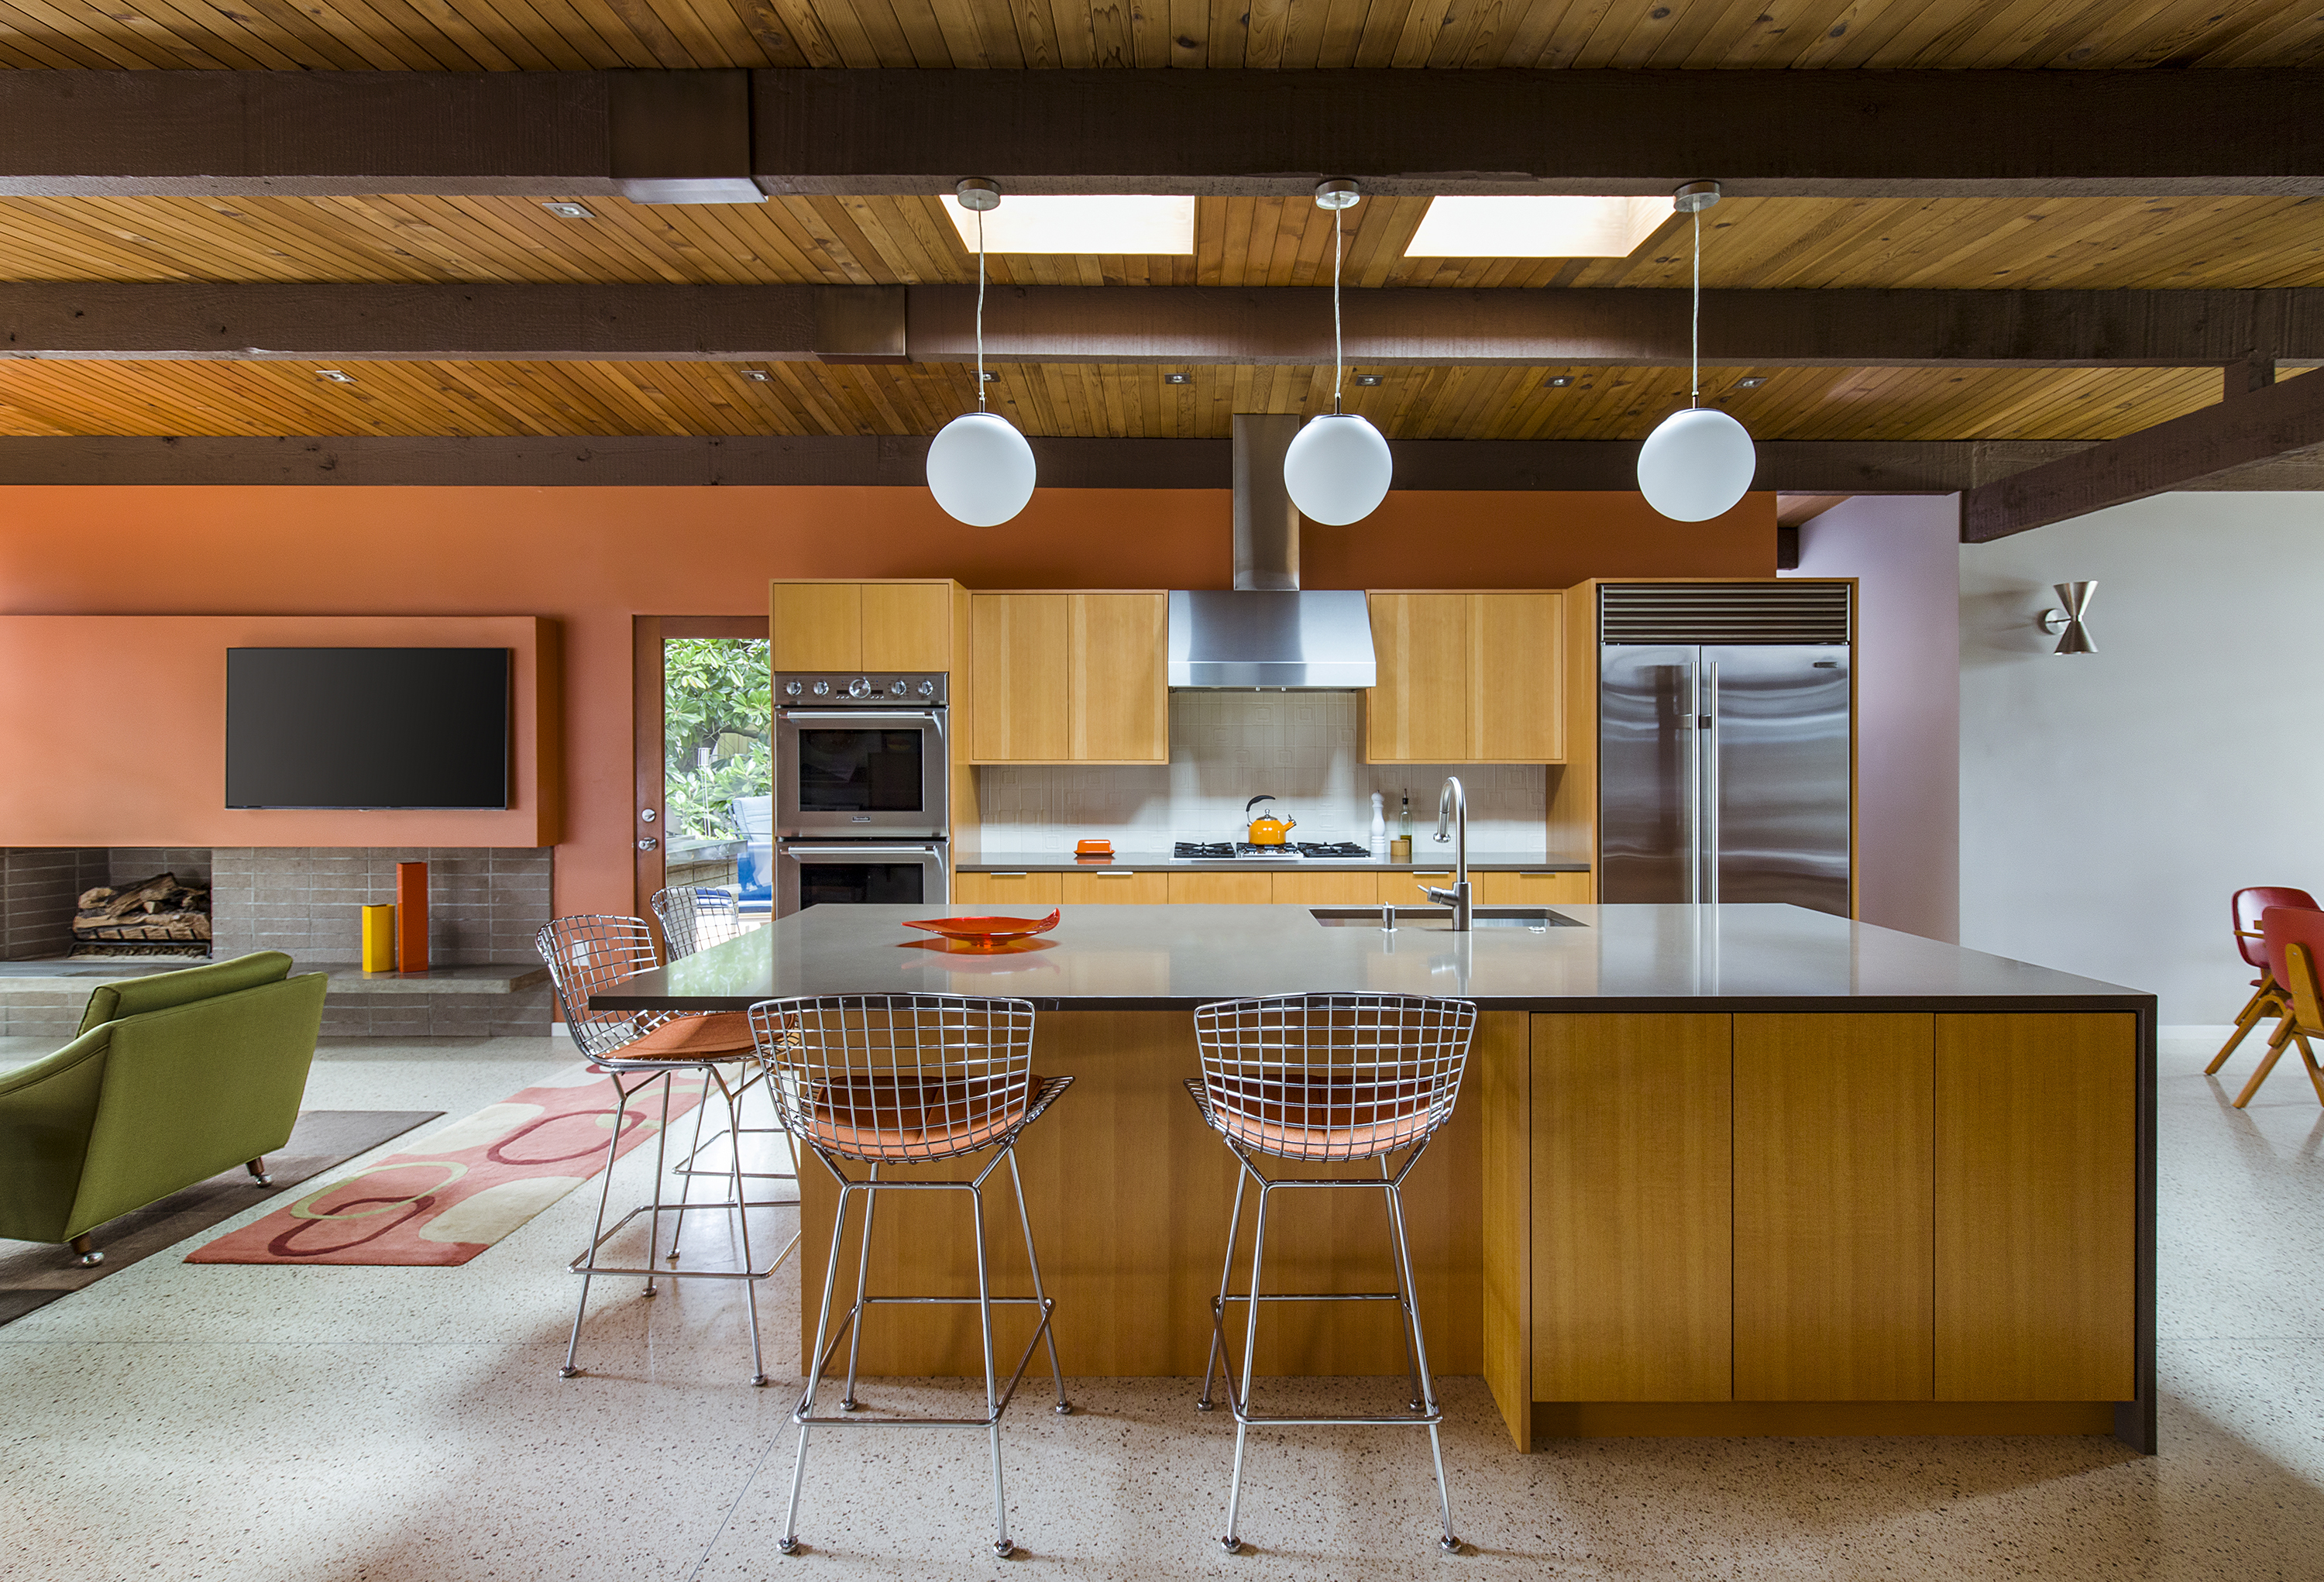 Curbed Love Where You Live - Interior designed houses